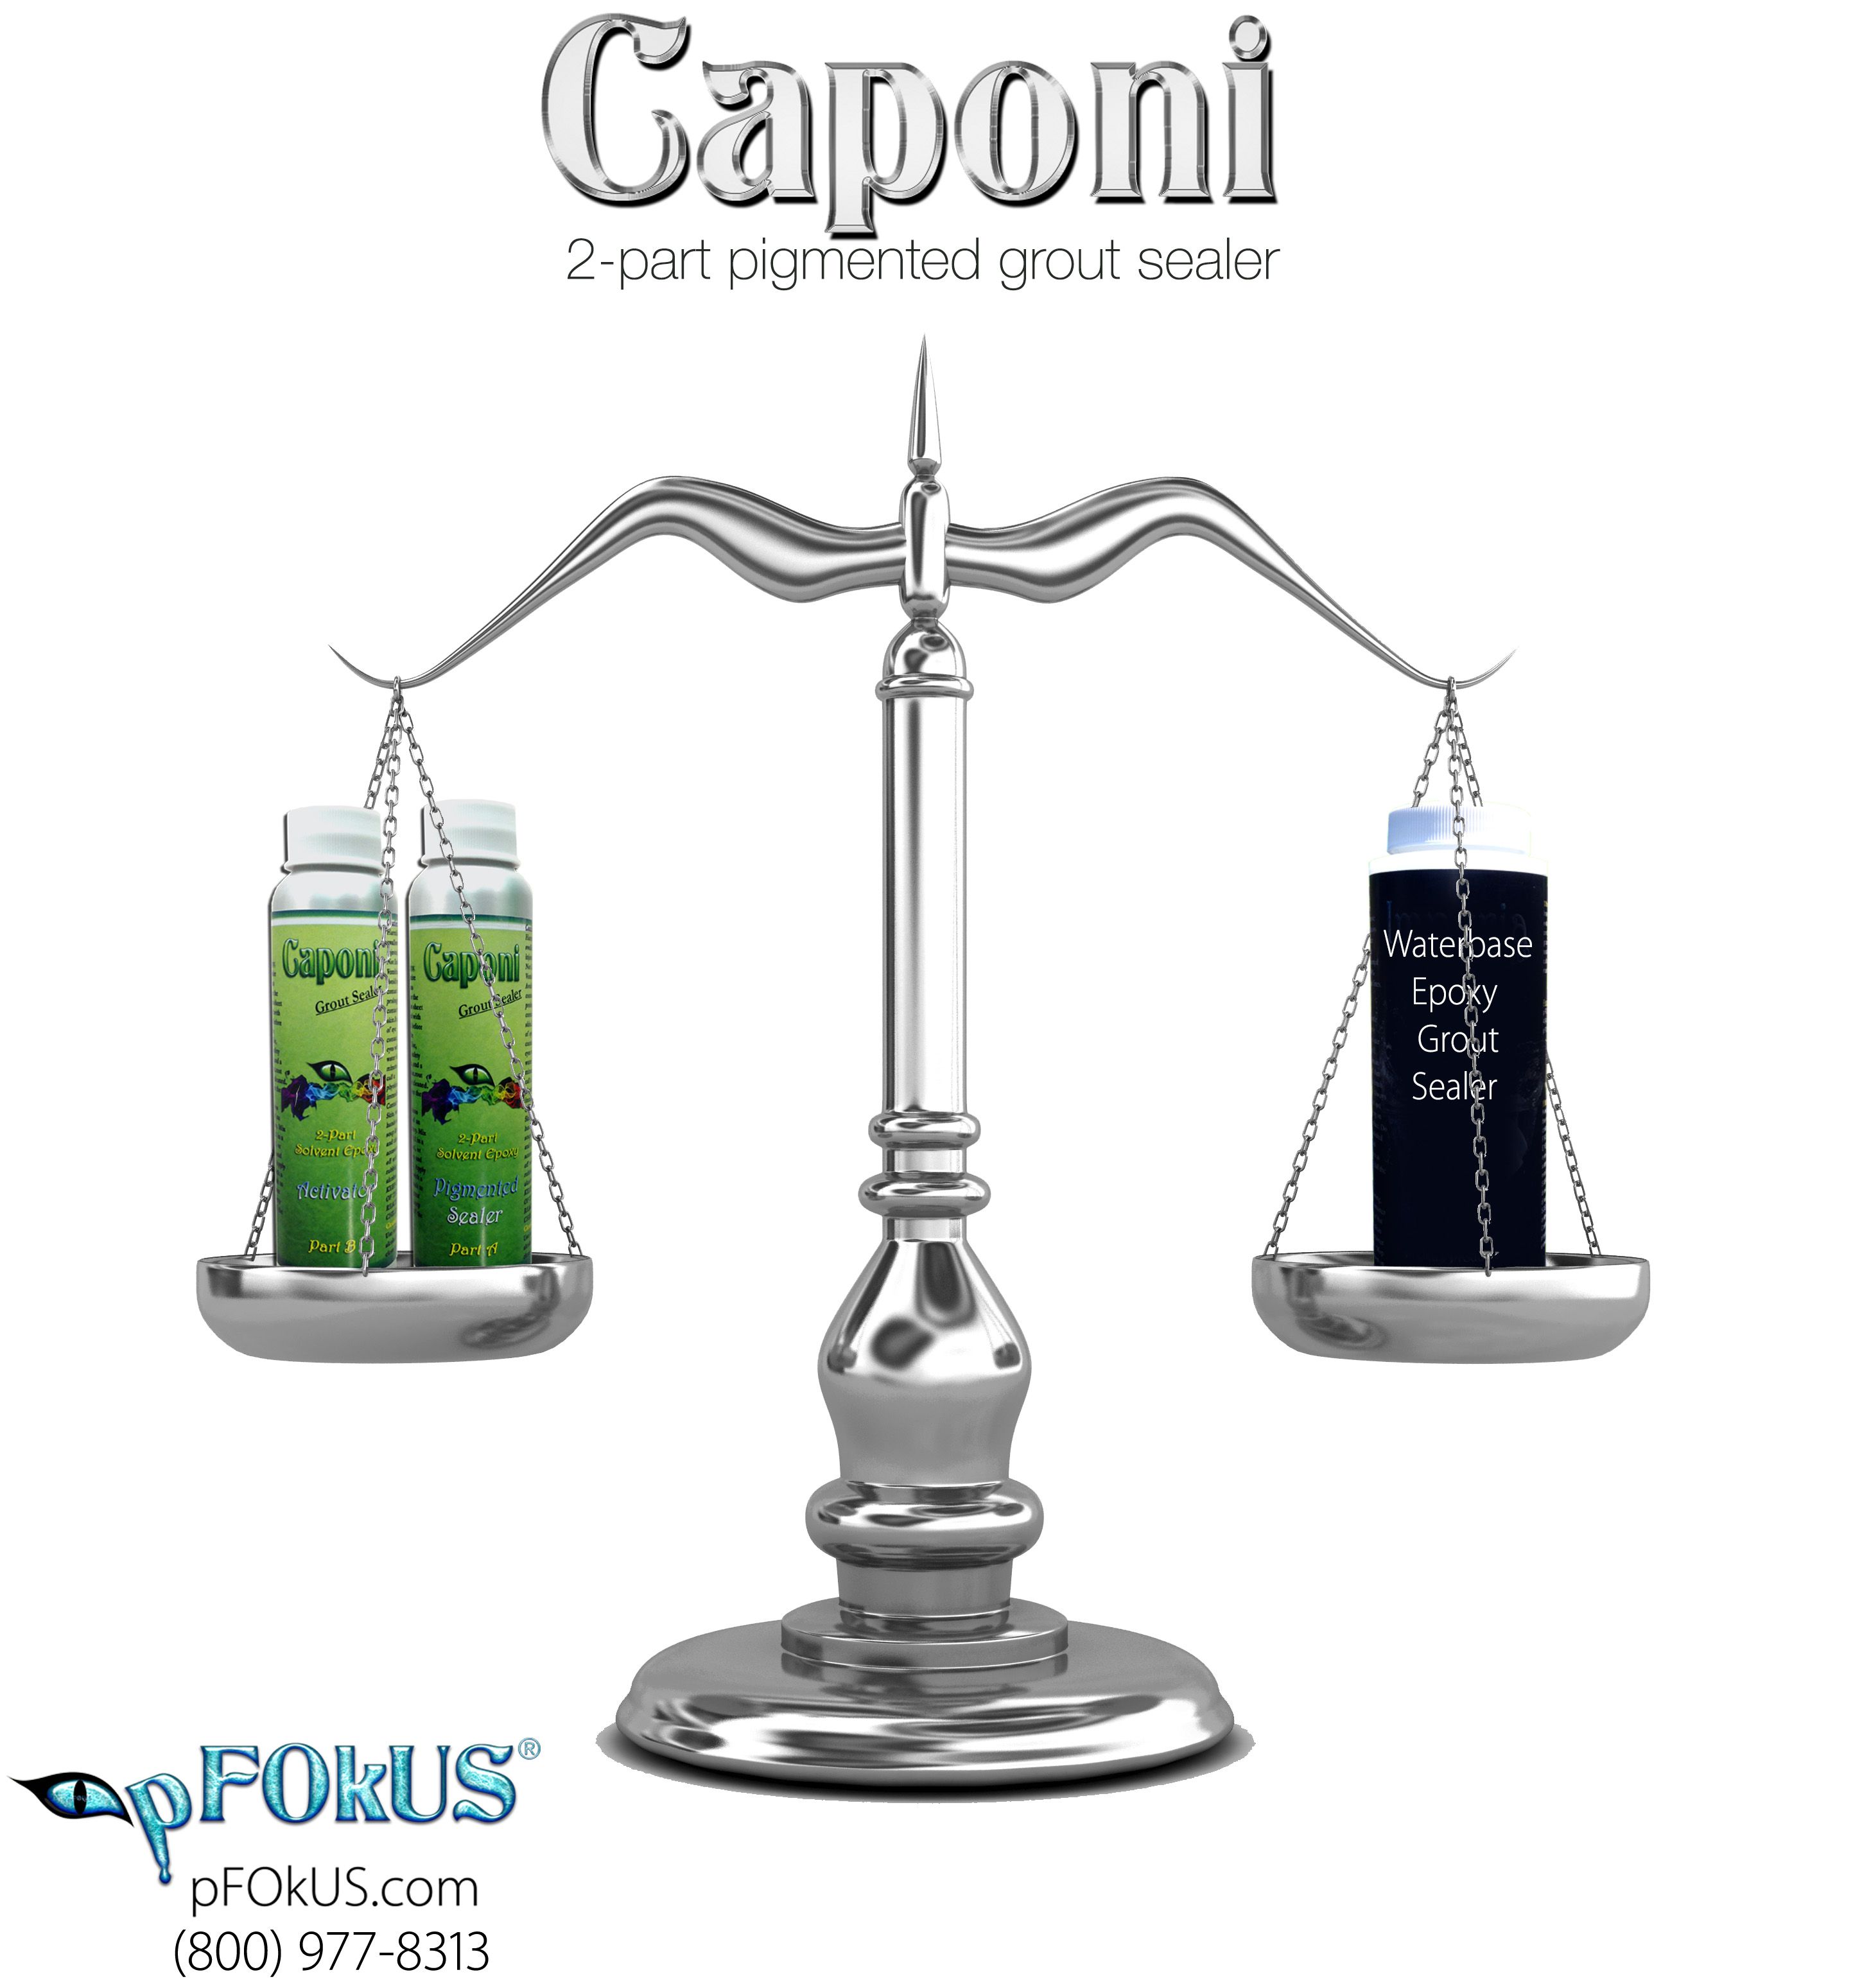 Epoxy Grout Sealer - Caponi vs Regular Grout Sealers | pFOkUS